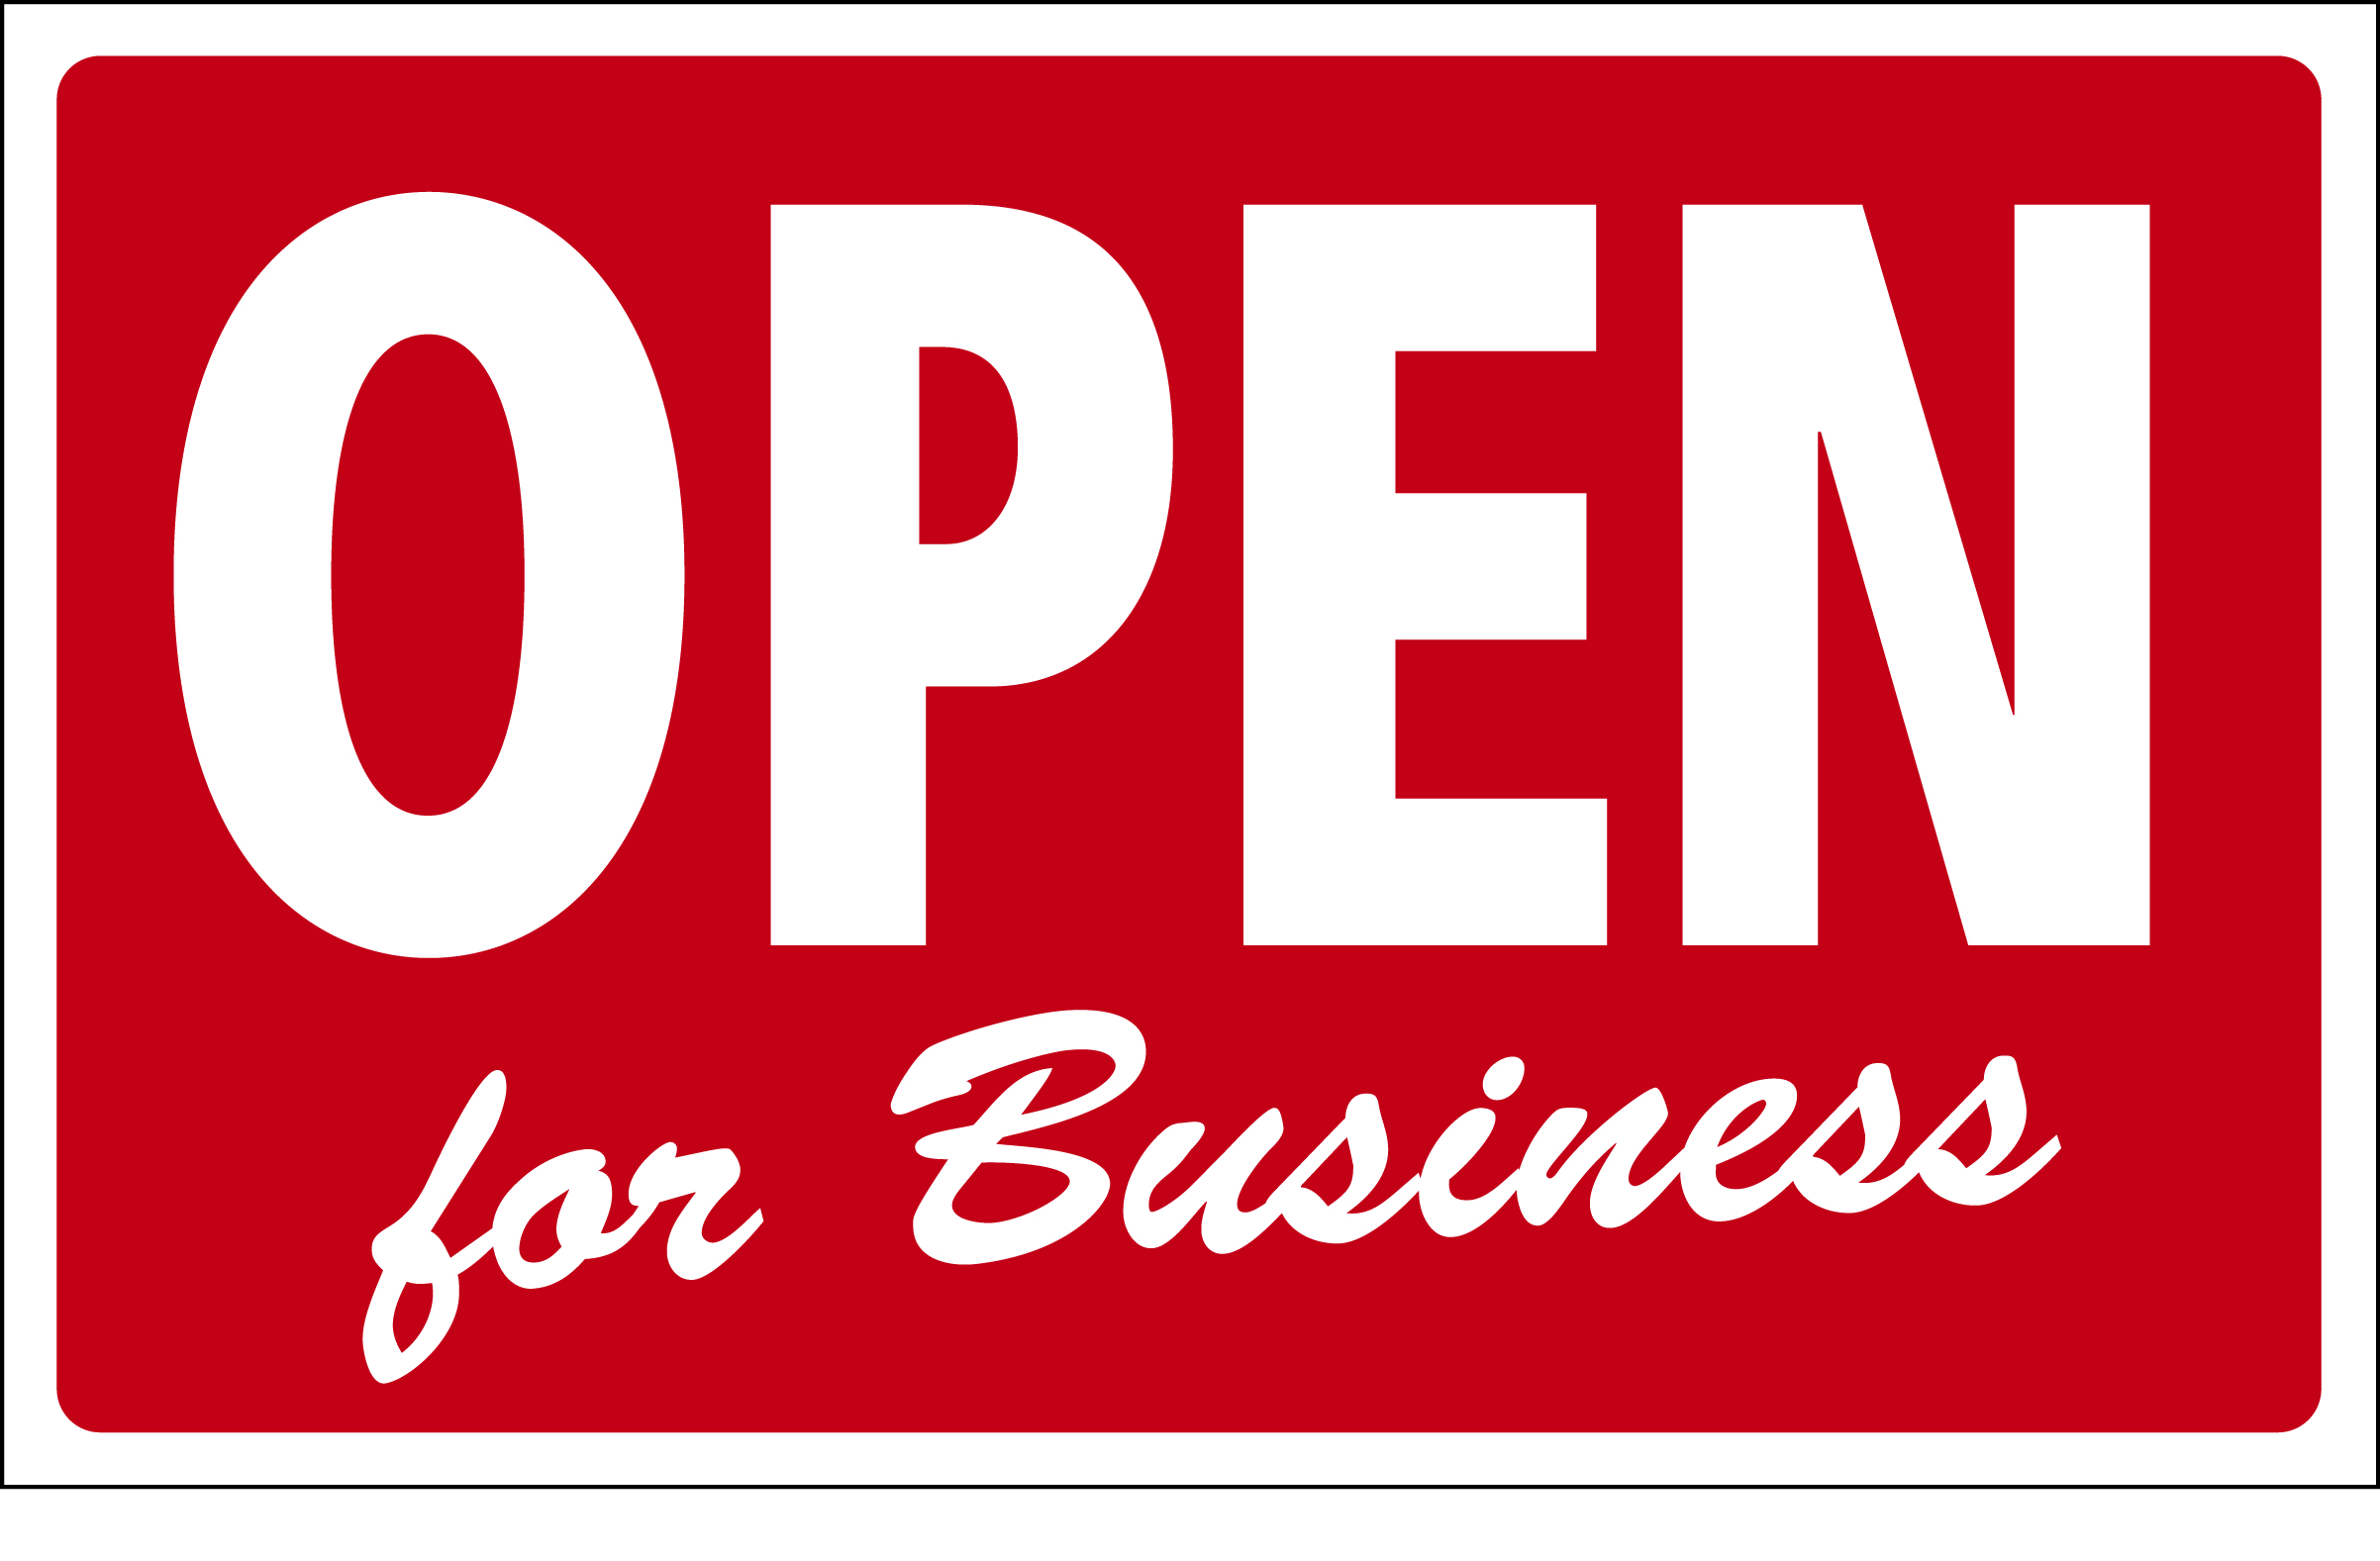 Business clipart shop. So you want to